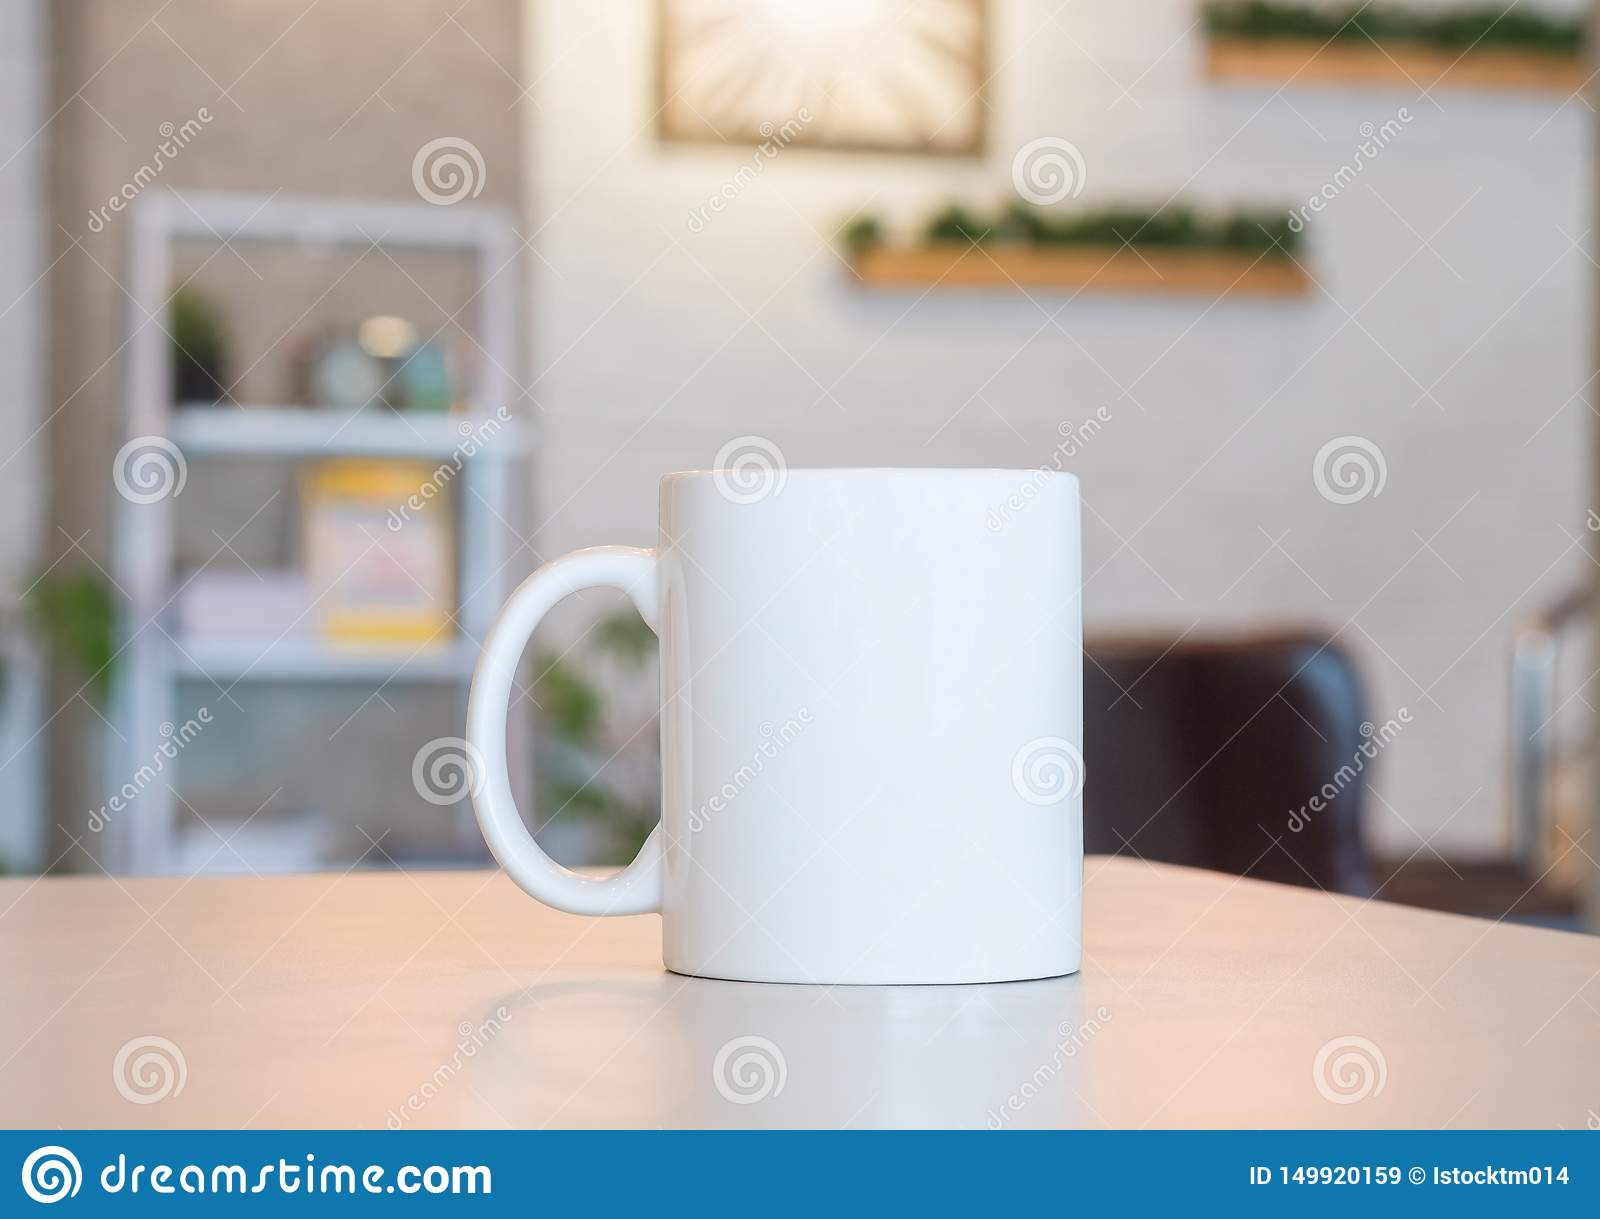 White mug on table and modern room background. Blank drink cup for your design. Can put text, image, and logo